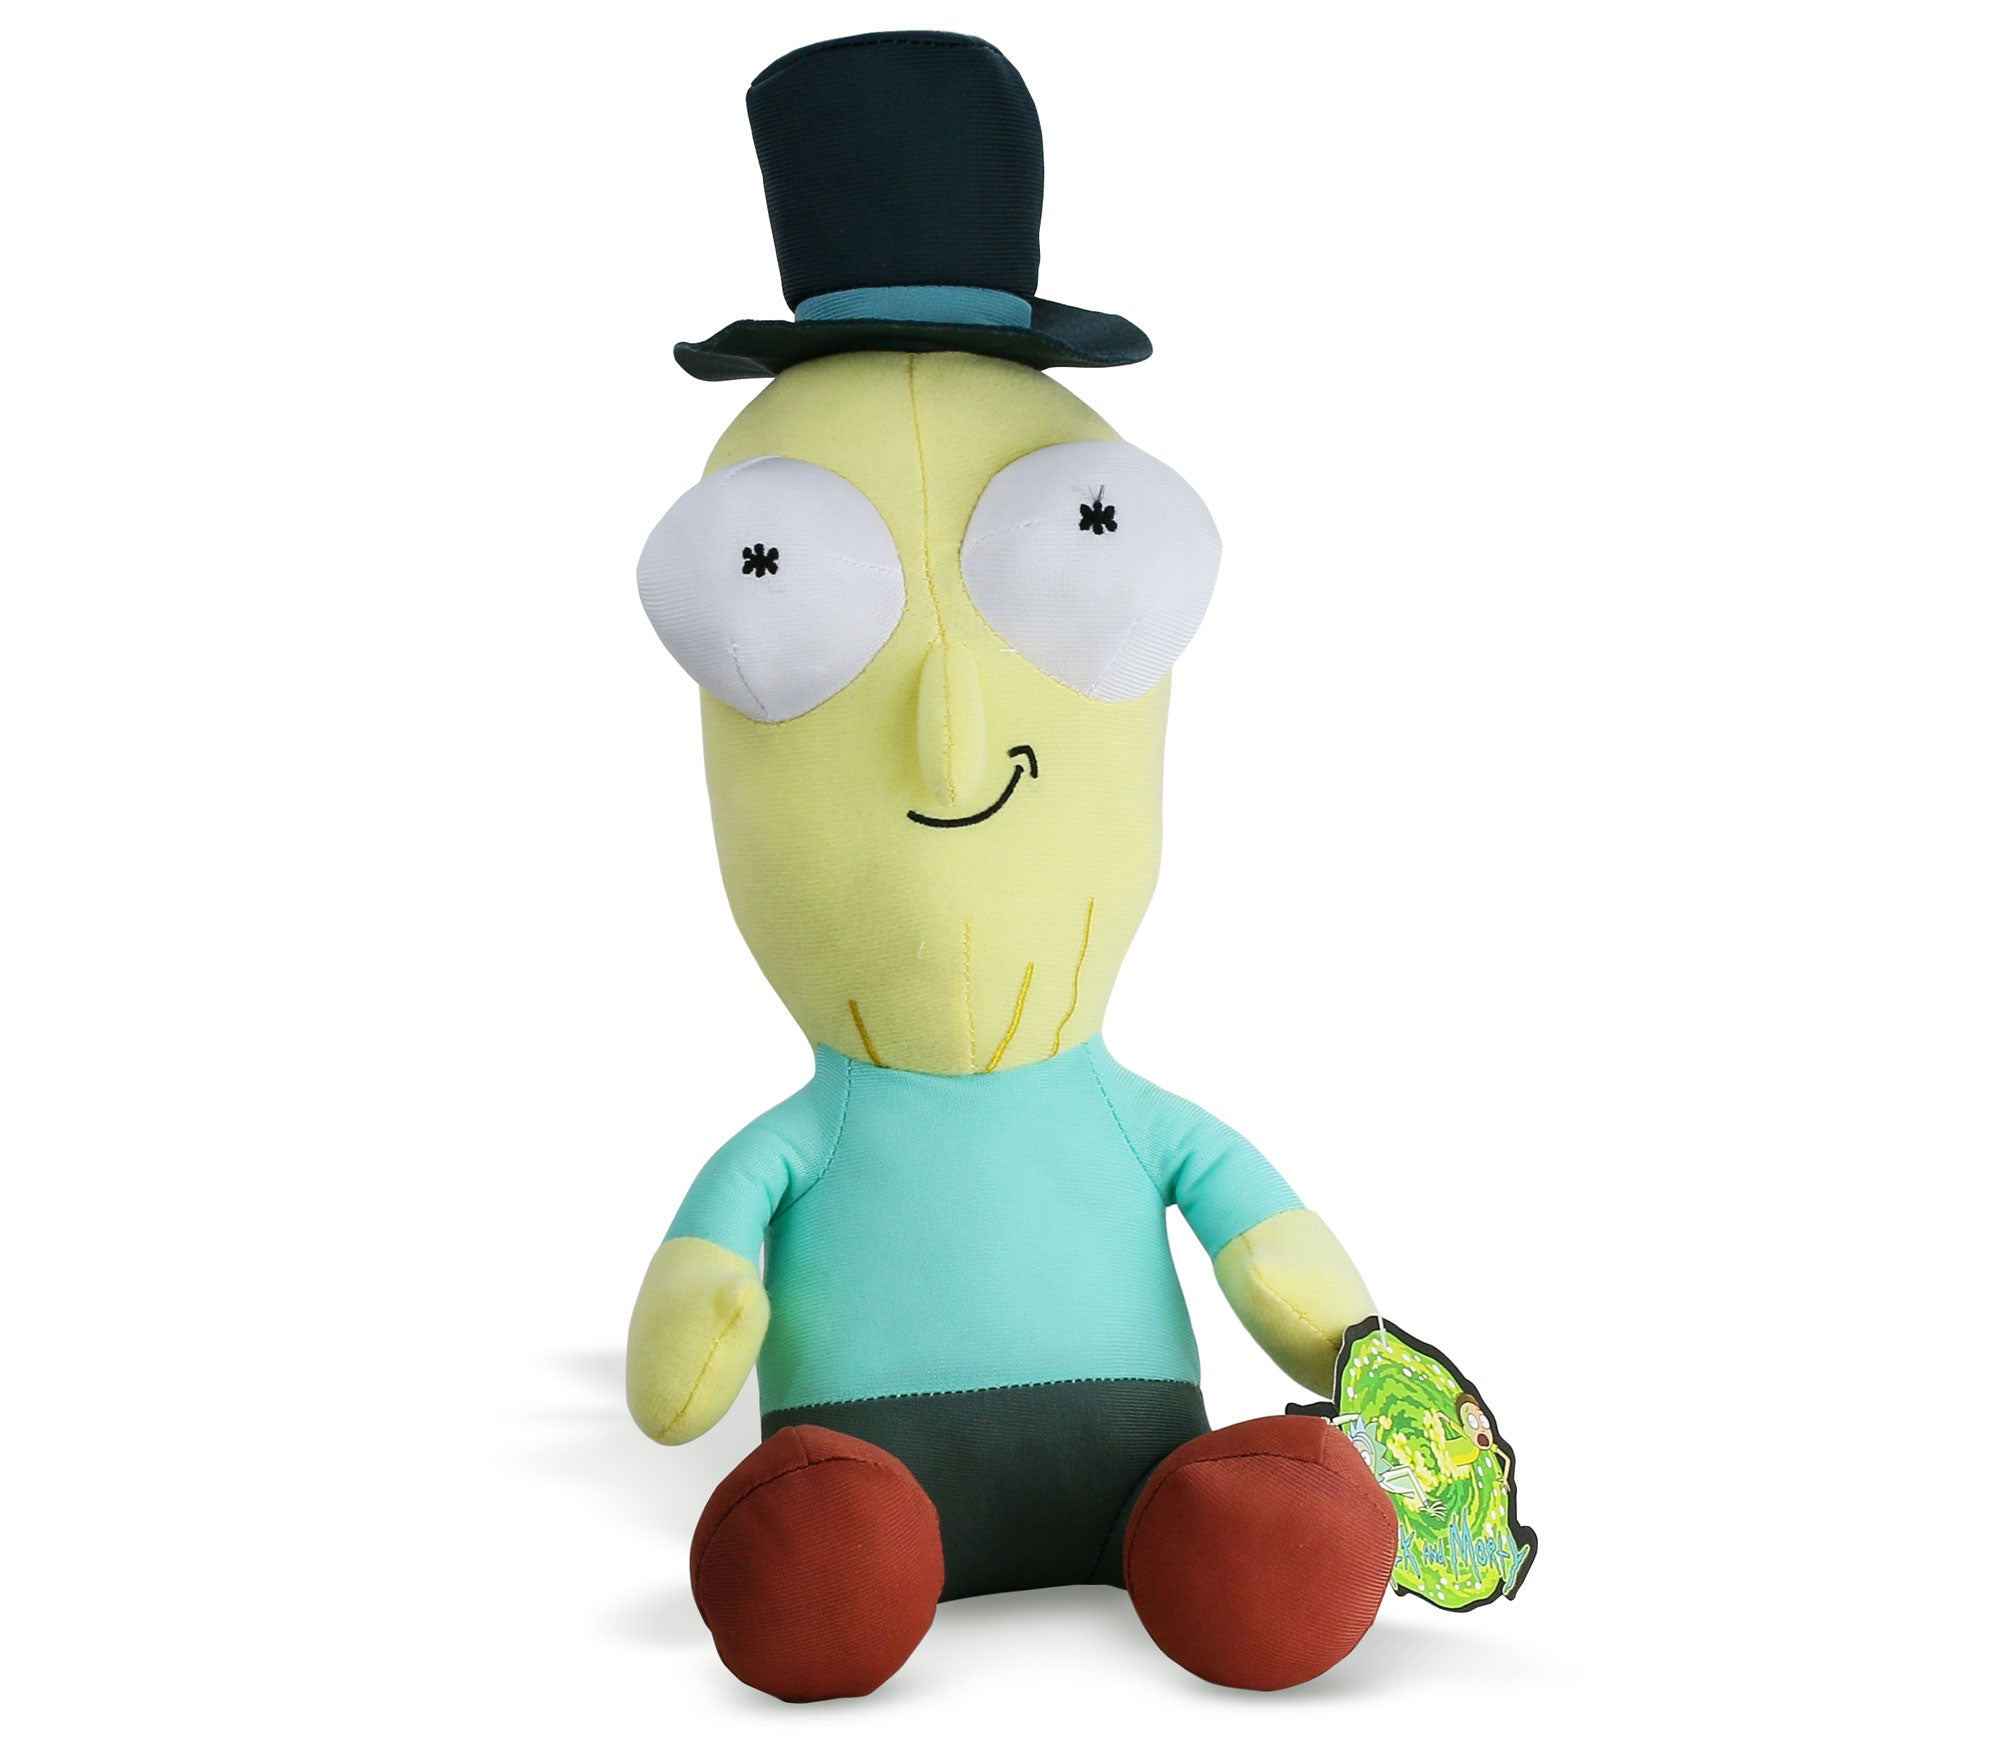 Rick&Morty-Plush Mr. Poopy Butthole